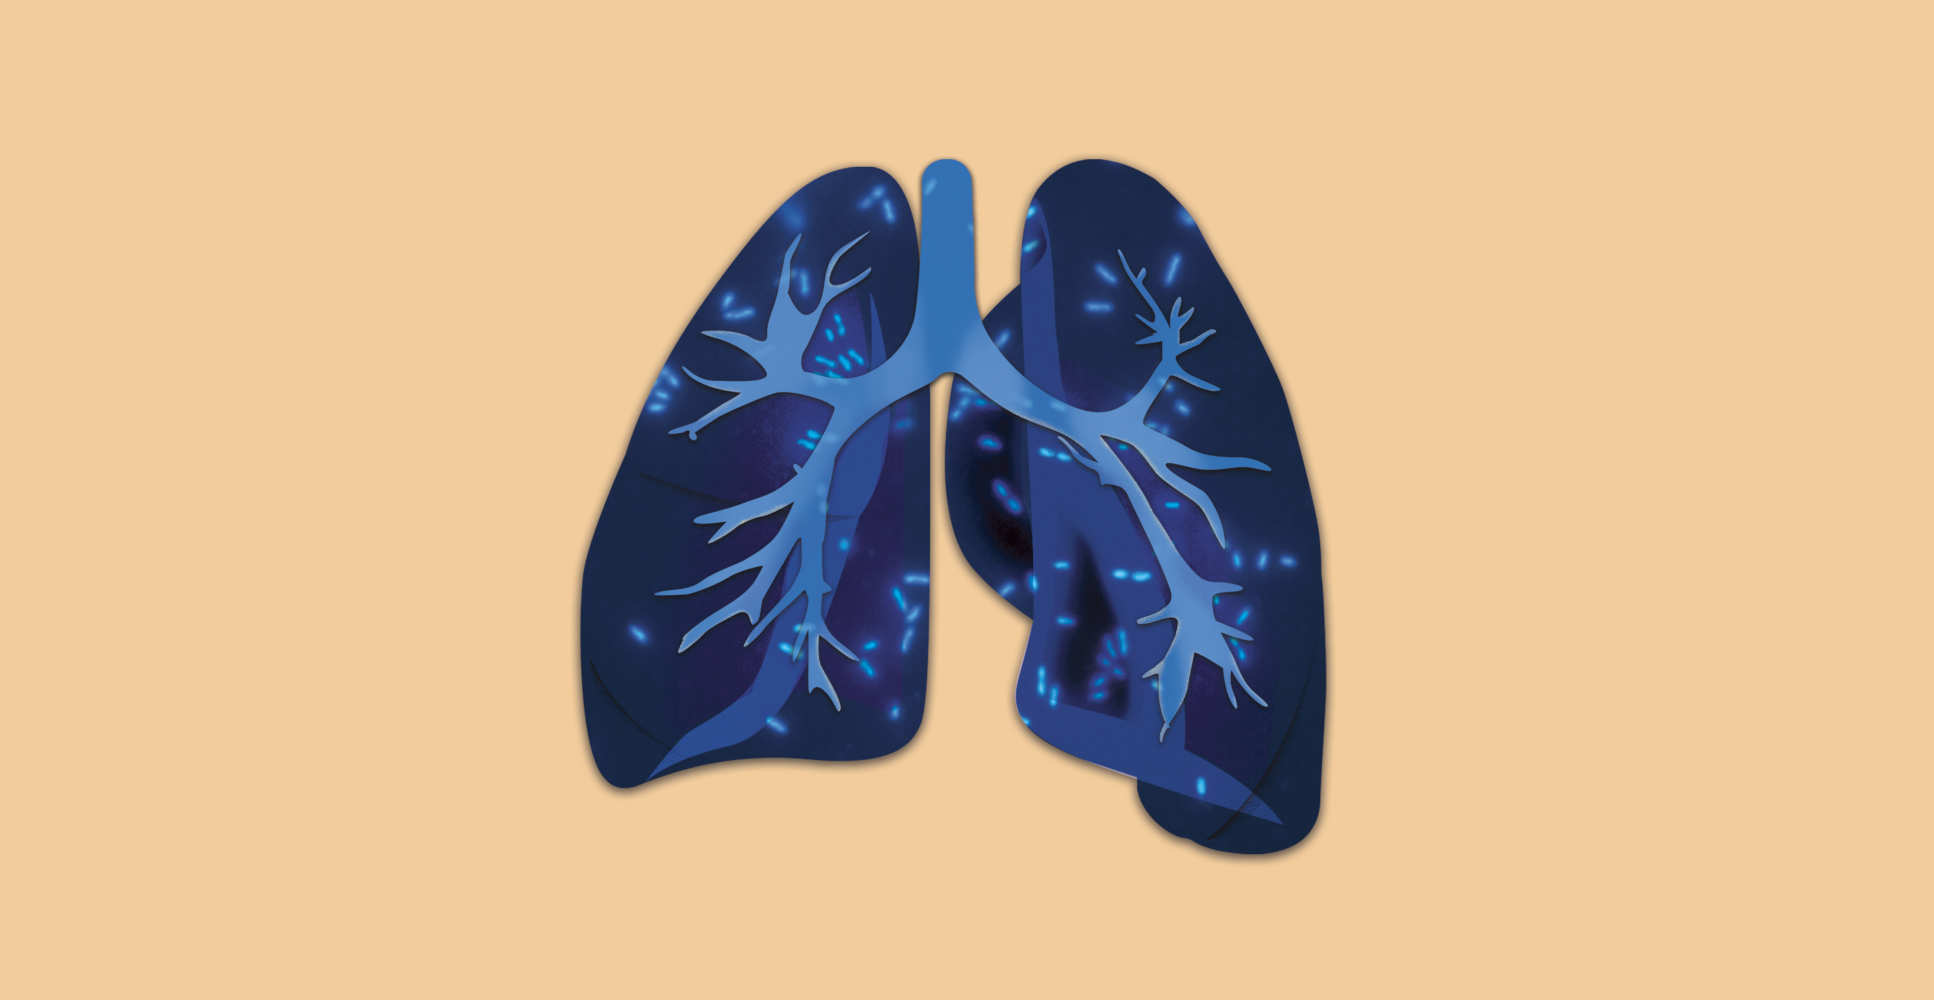 Illustration of detail of a lung overlaid with images featuring P. aeruginosa PAO1